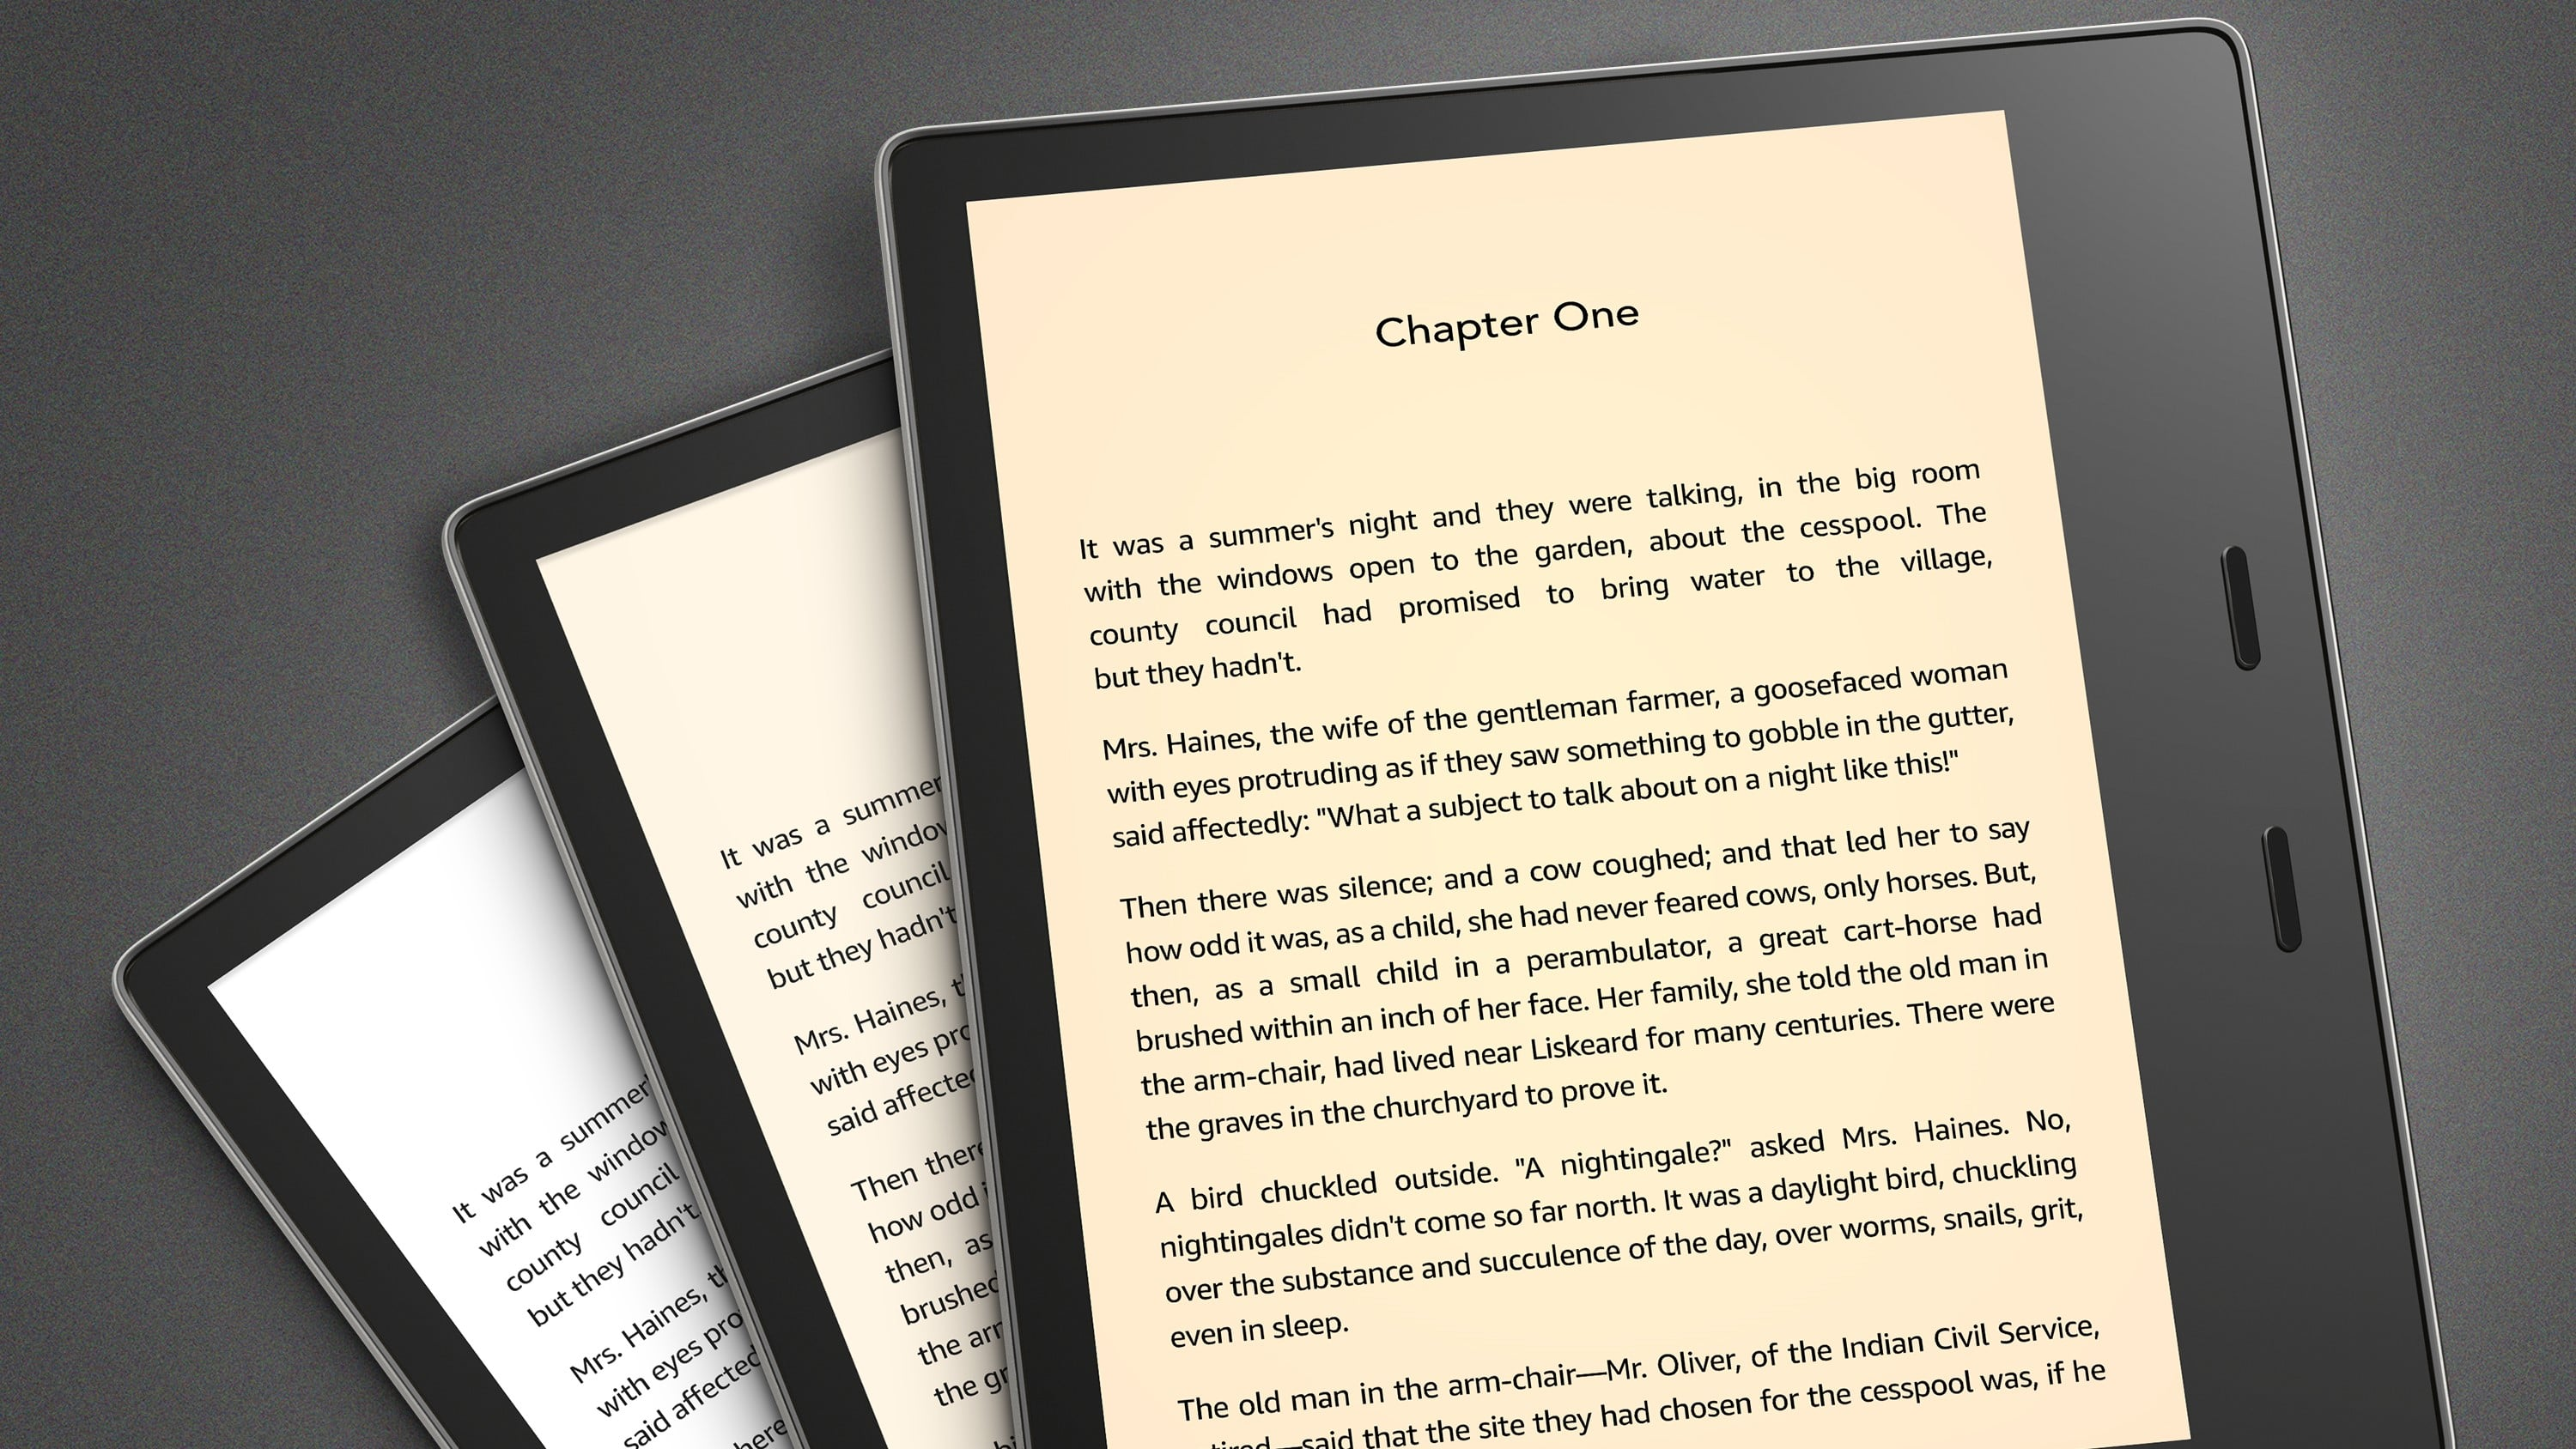 Kindle 9 vs Kindle Paperwhite 4 vs Kindle Oasis 3